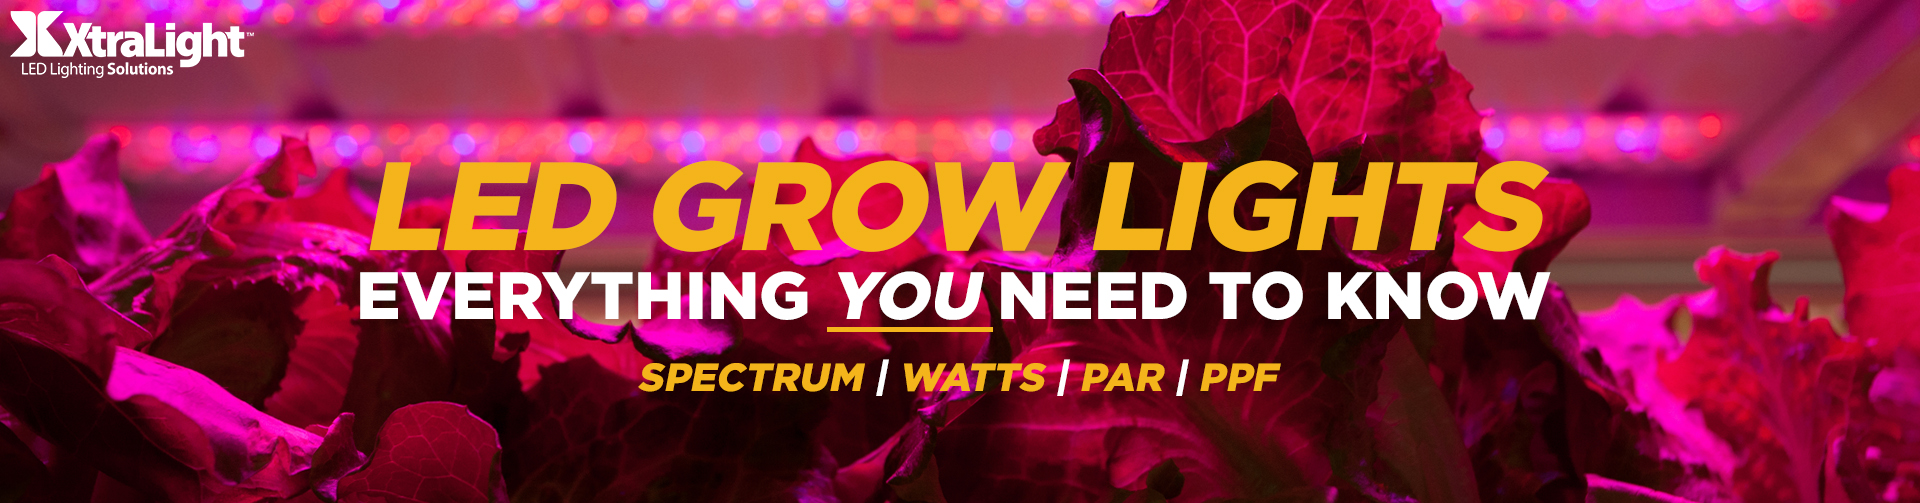 LED Grow Light BLOG